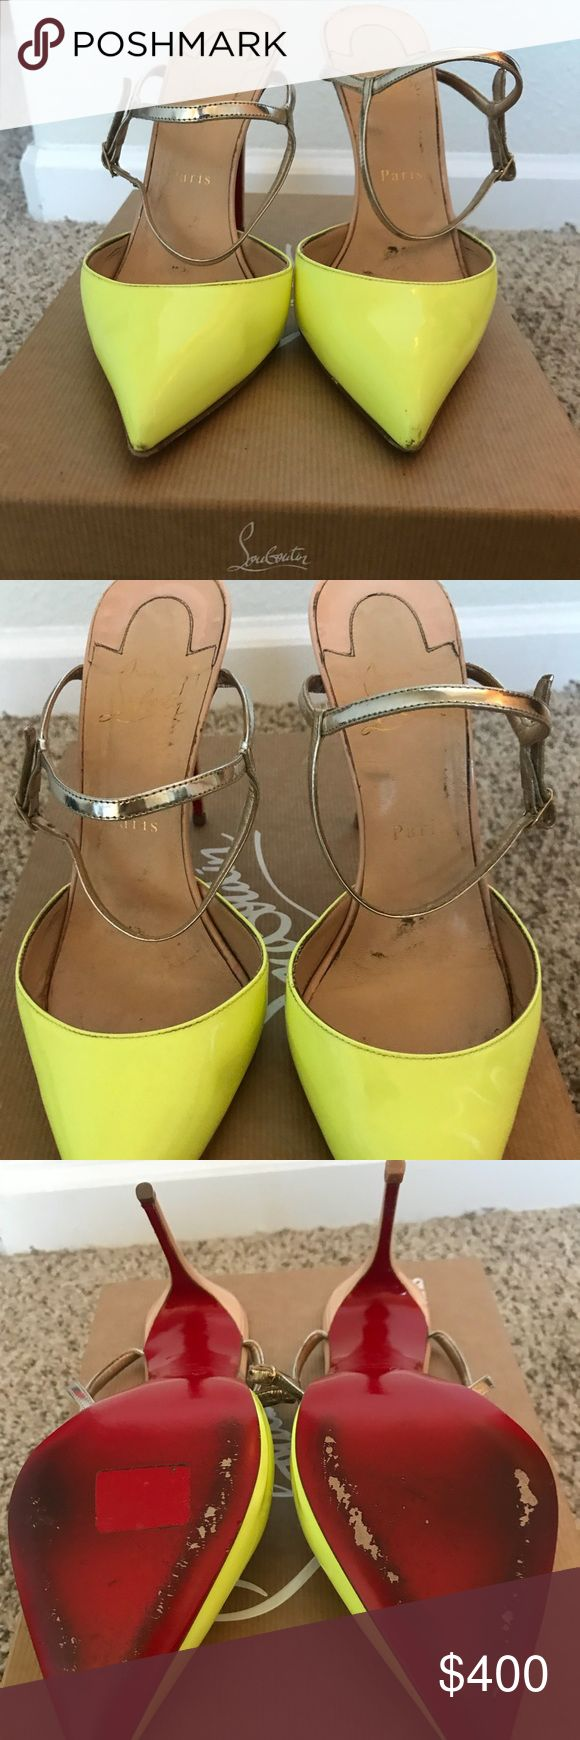 Christian Louboutin Rivierina 100mm Neon Pumps 39 Christian Louboutin Rivierina 100mm Neon Pumps size 39. Colors are Neon Green with light gold straps and baby pink/nude back. Slightly worn and stretched out comfortably. VERY COMFORTABLE. Comes with original box and dust bags. Could fit size 8.5-9.5 perfect for wider foot Christian Louboutin Shoes Heels